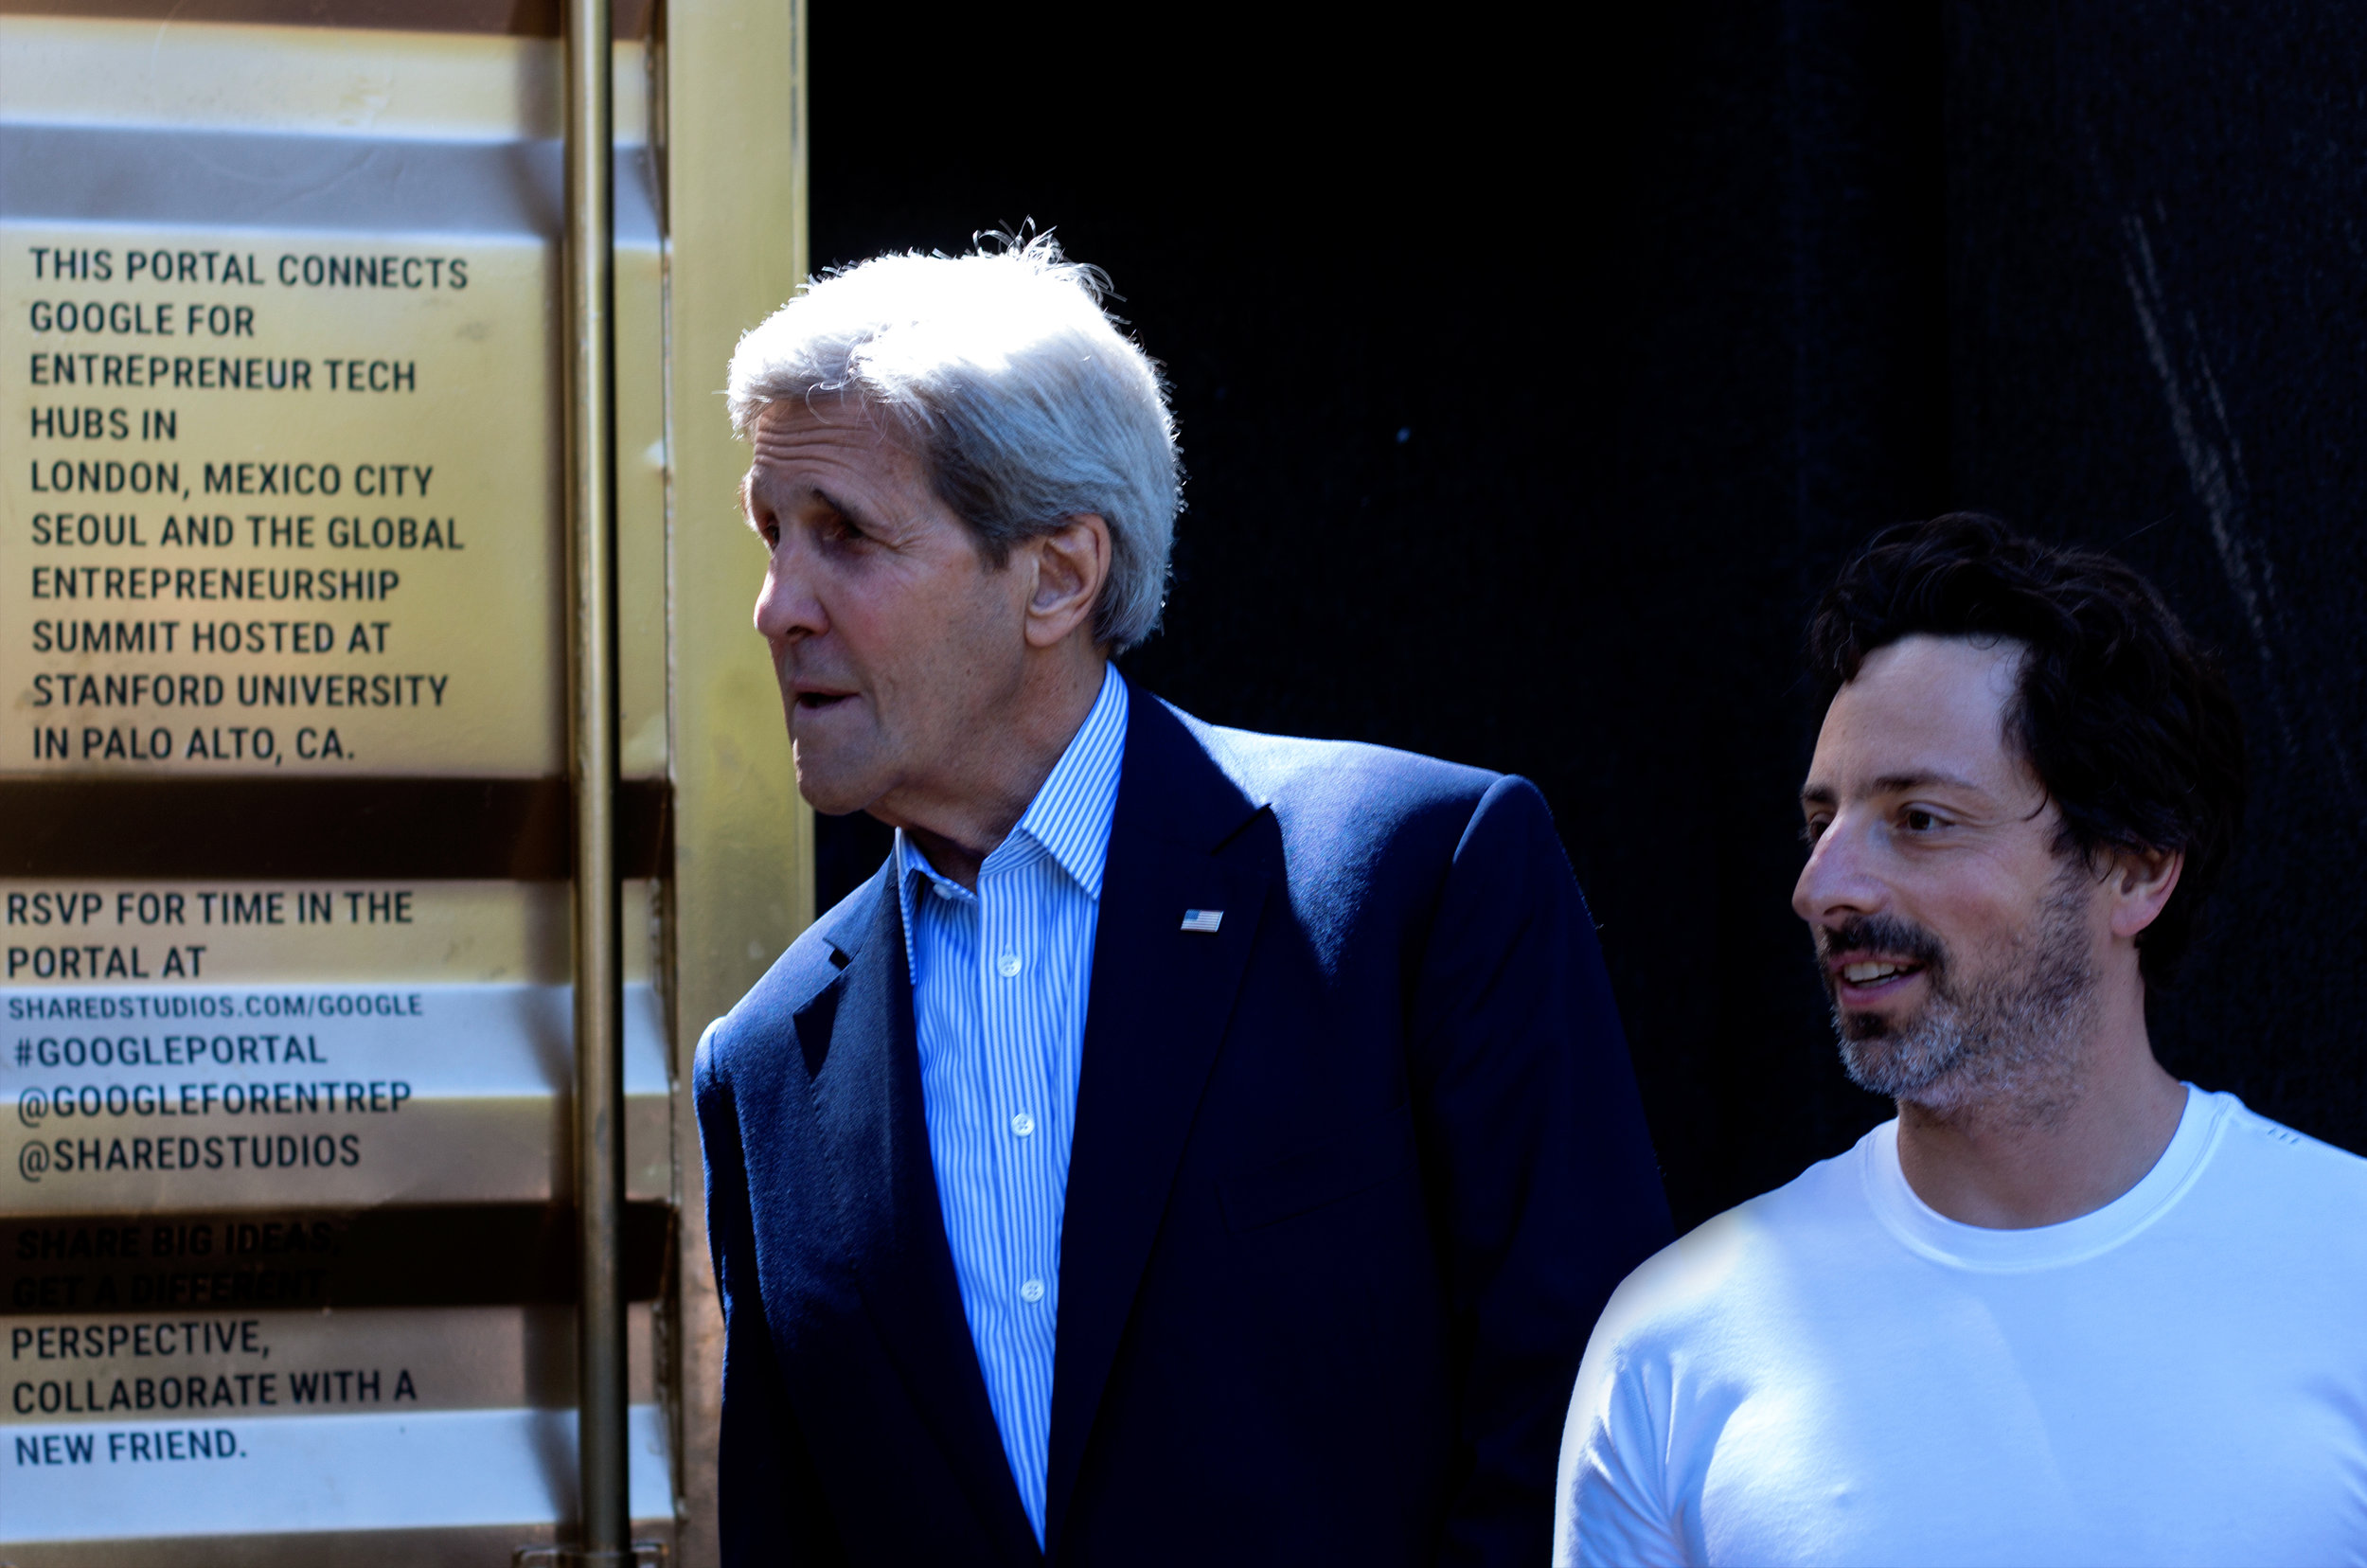 John Kerry and Sergey Brin leave the Portal after talking to entrepreneurs in Herat, Seoul and Mexico